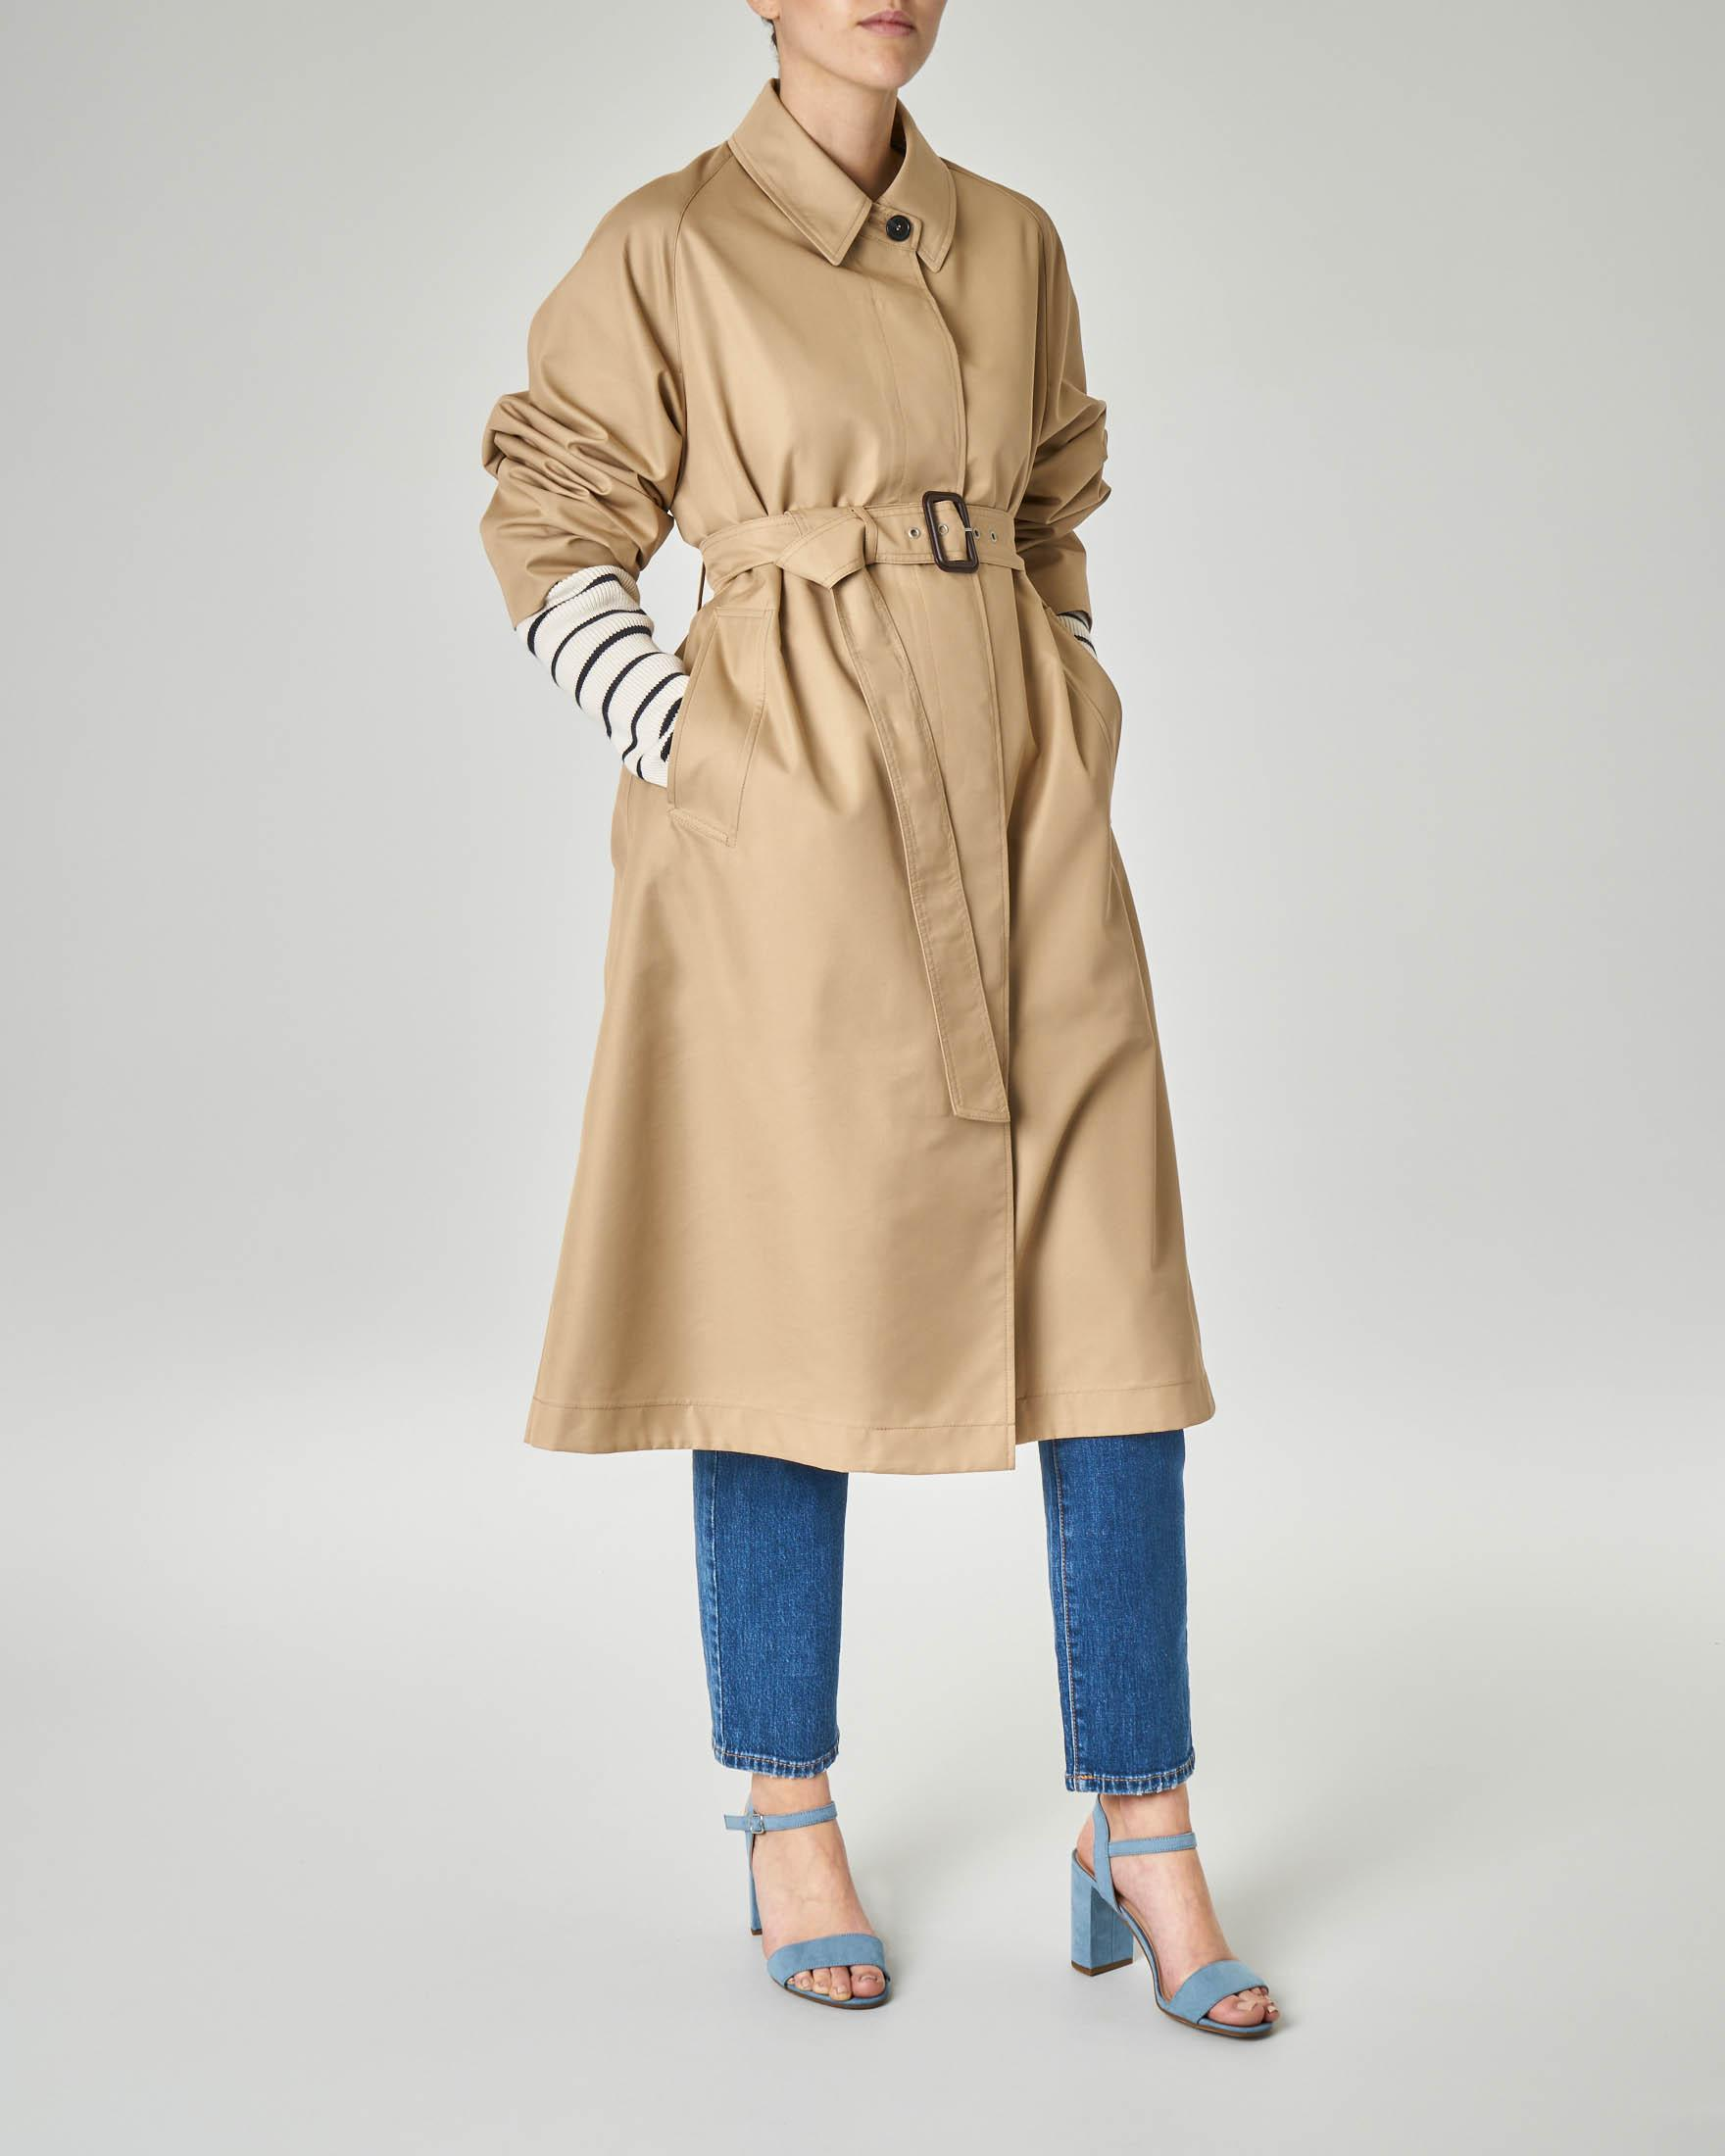 Trench in cotone modello oversized con colletto a camicia e cintura in vita